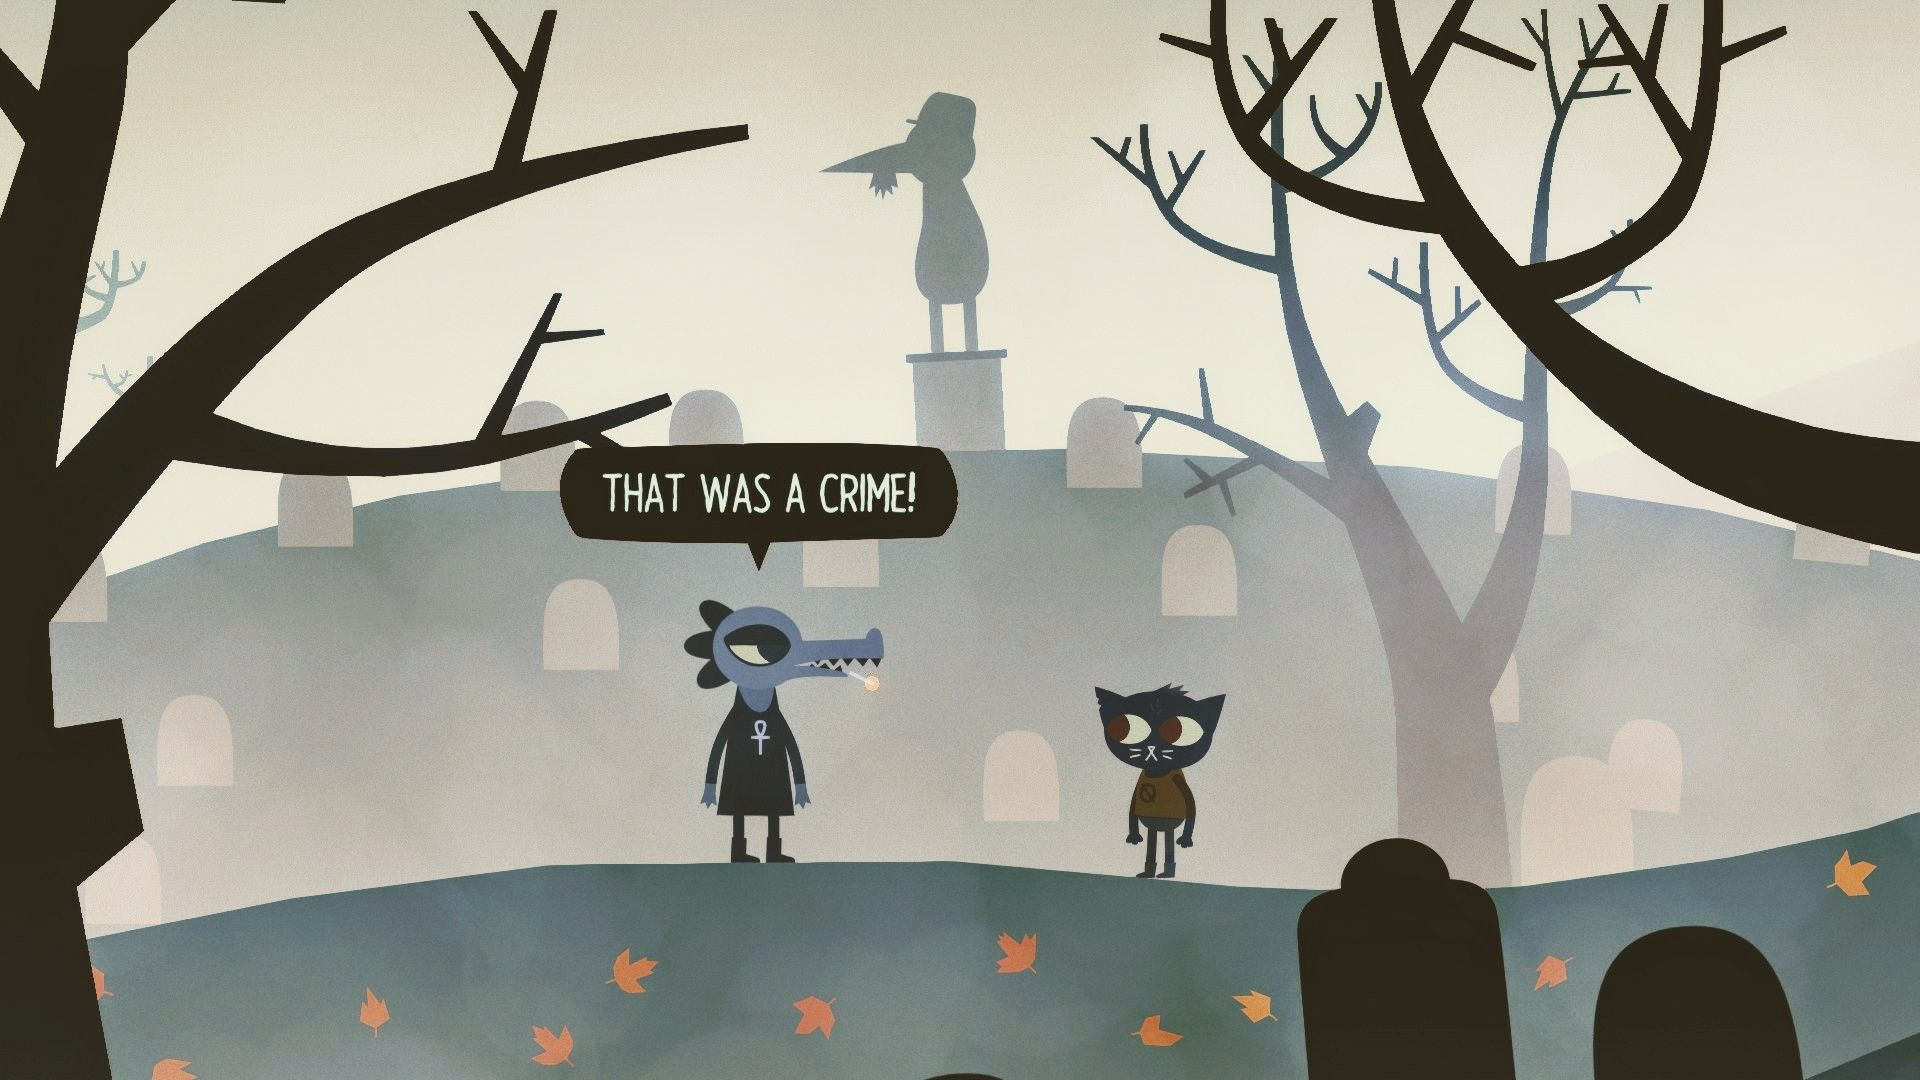 Night In The Woods Crimes Crimes Night In The Wood Wood Art Wood